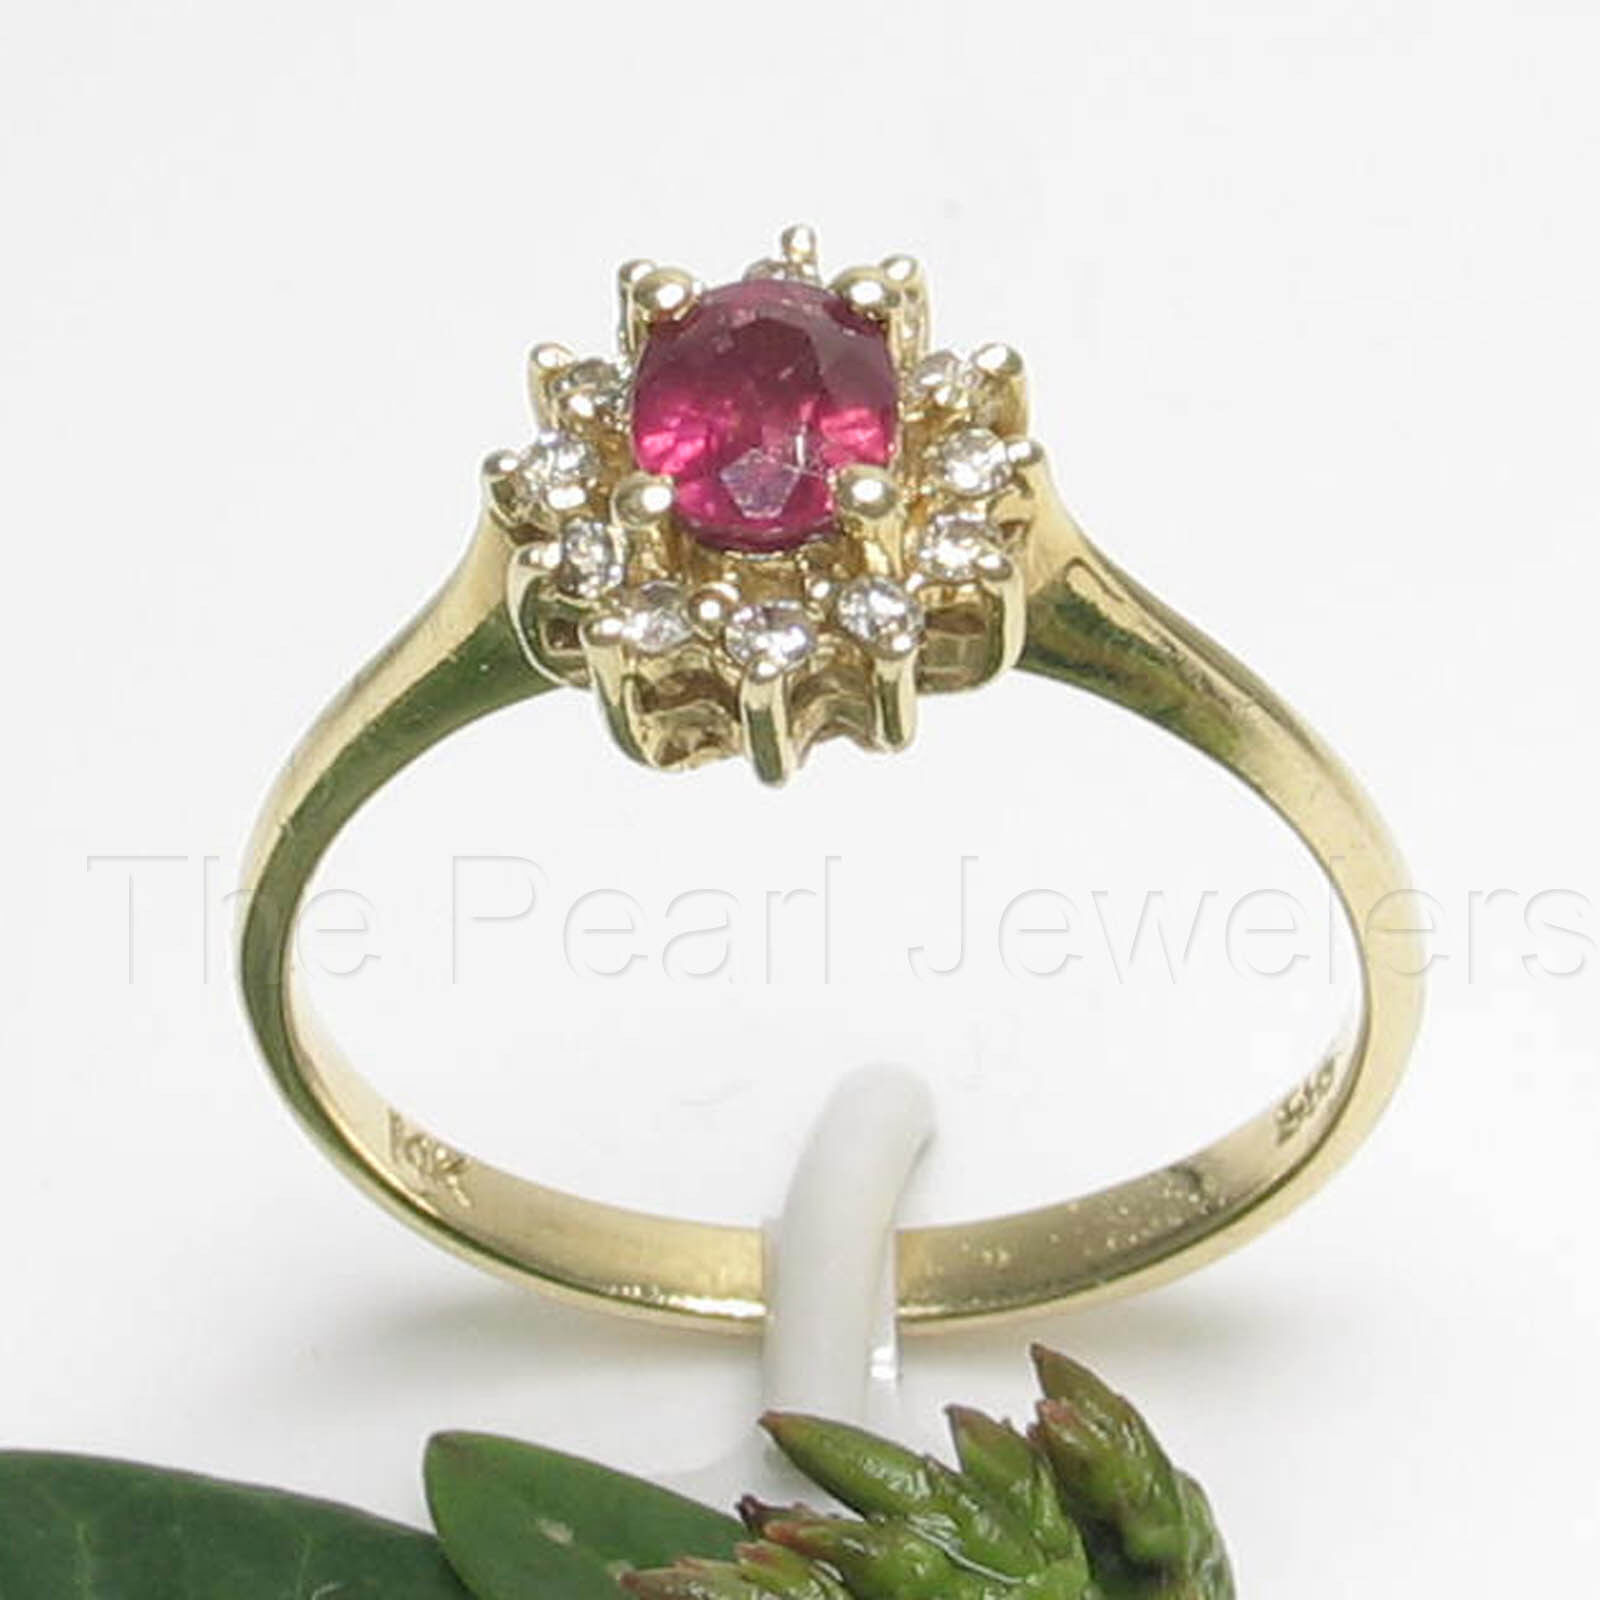 14k Yellow Solid gold Genuine Diamond & Oval Red Ruby Solitaire Accents Ring TPJ